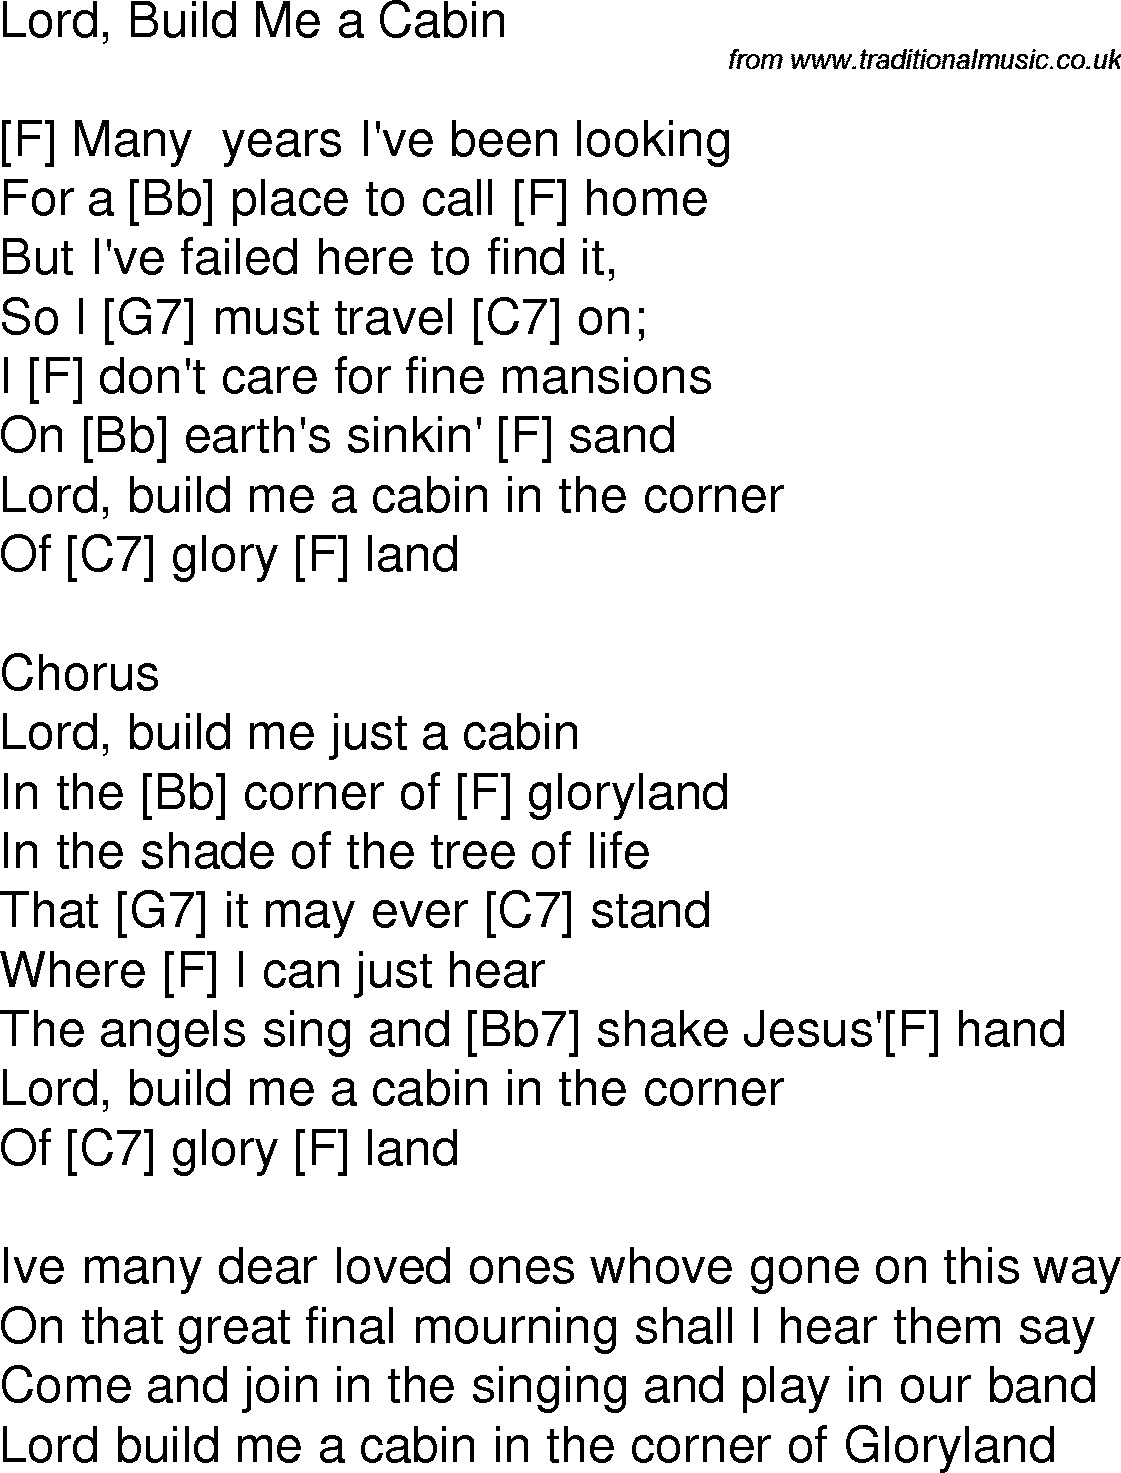 Old time song lyrics with guitar chords for lord build me a cabin f old time song lyrics with chords for lord build me a cabin f hexwebz Gallery